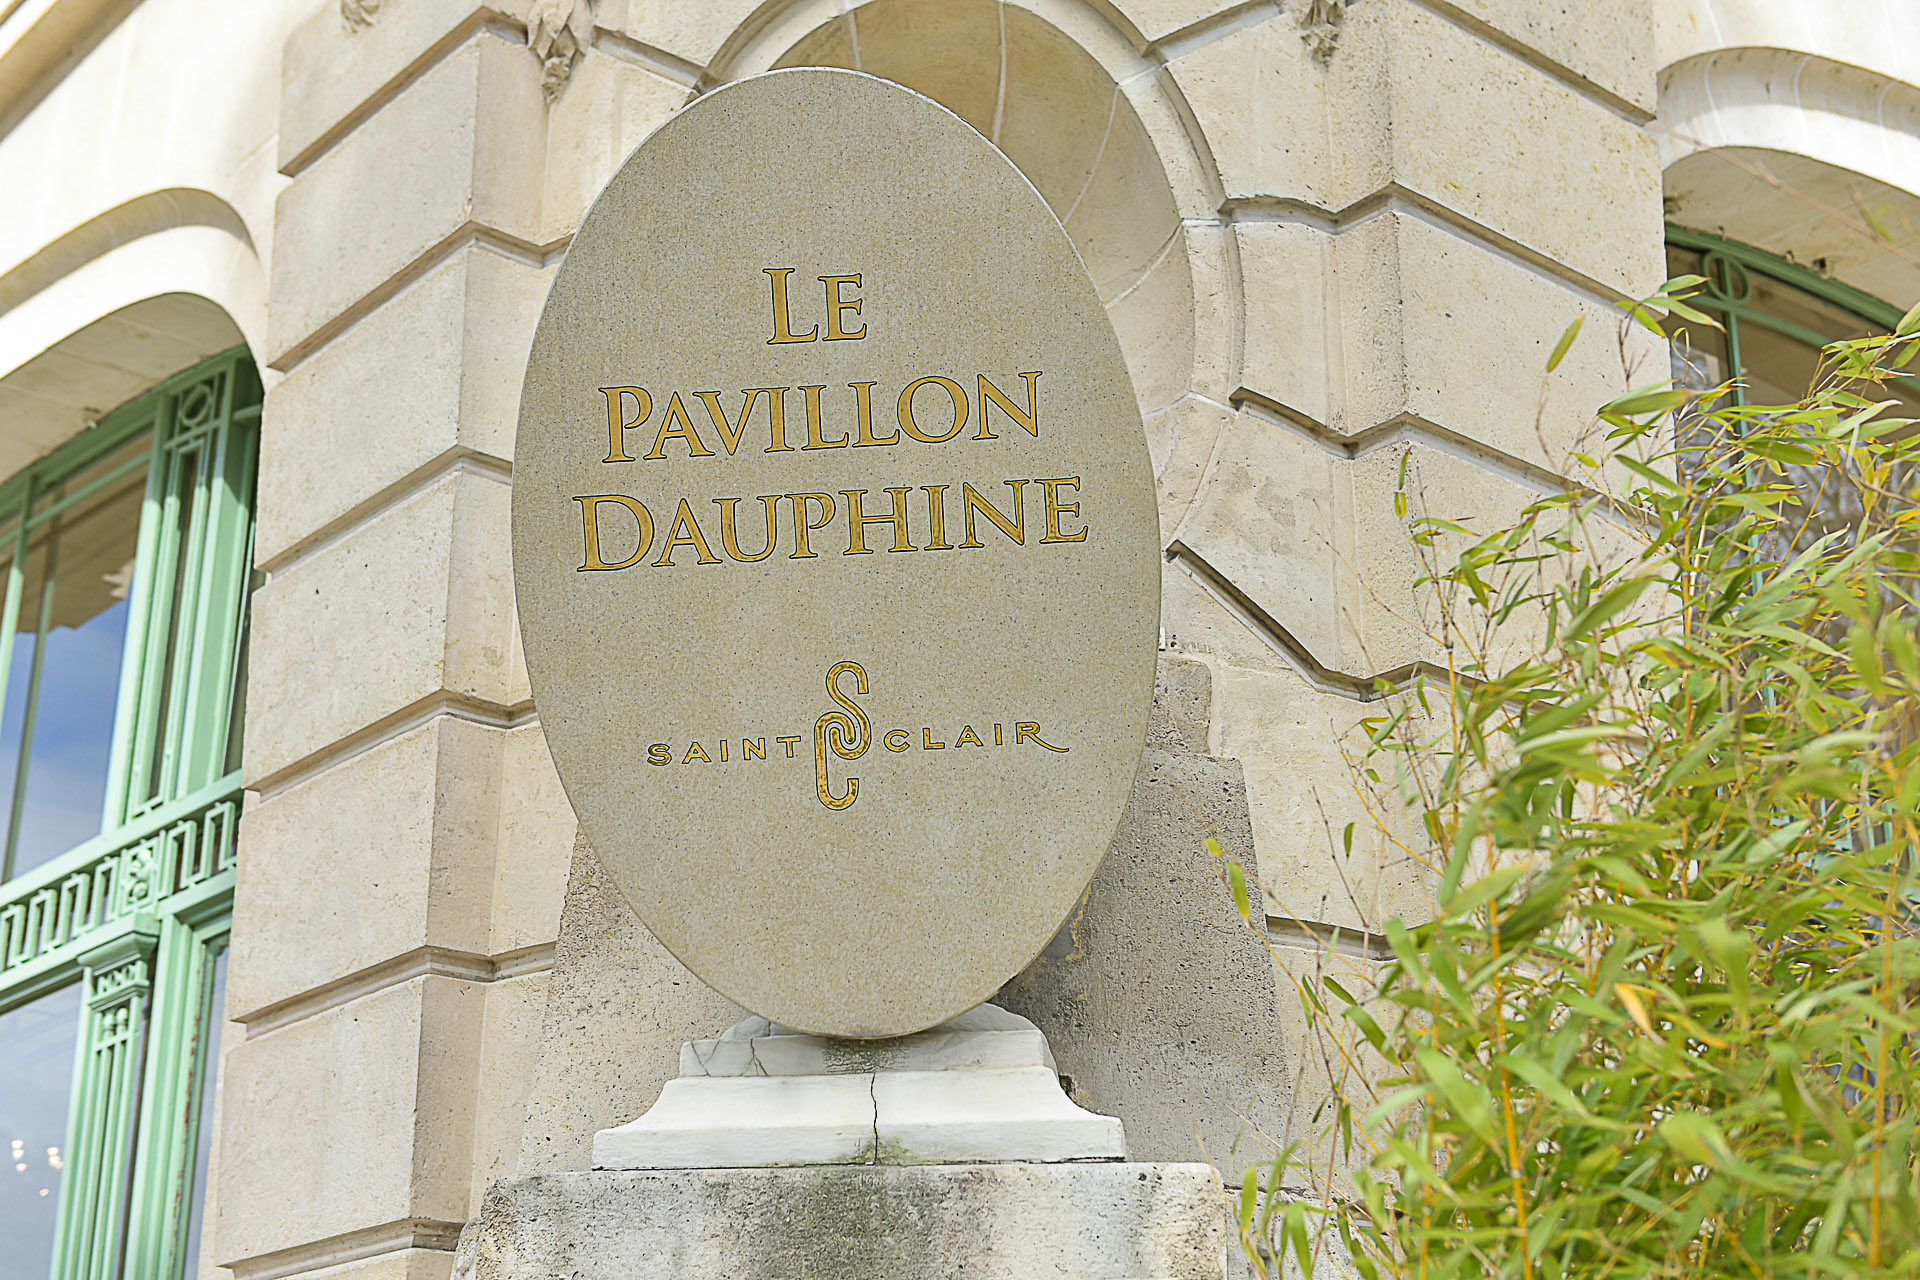 photographe-ile-de-france-pavillon-dauphine